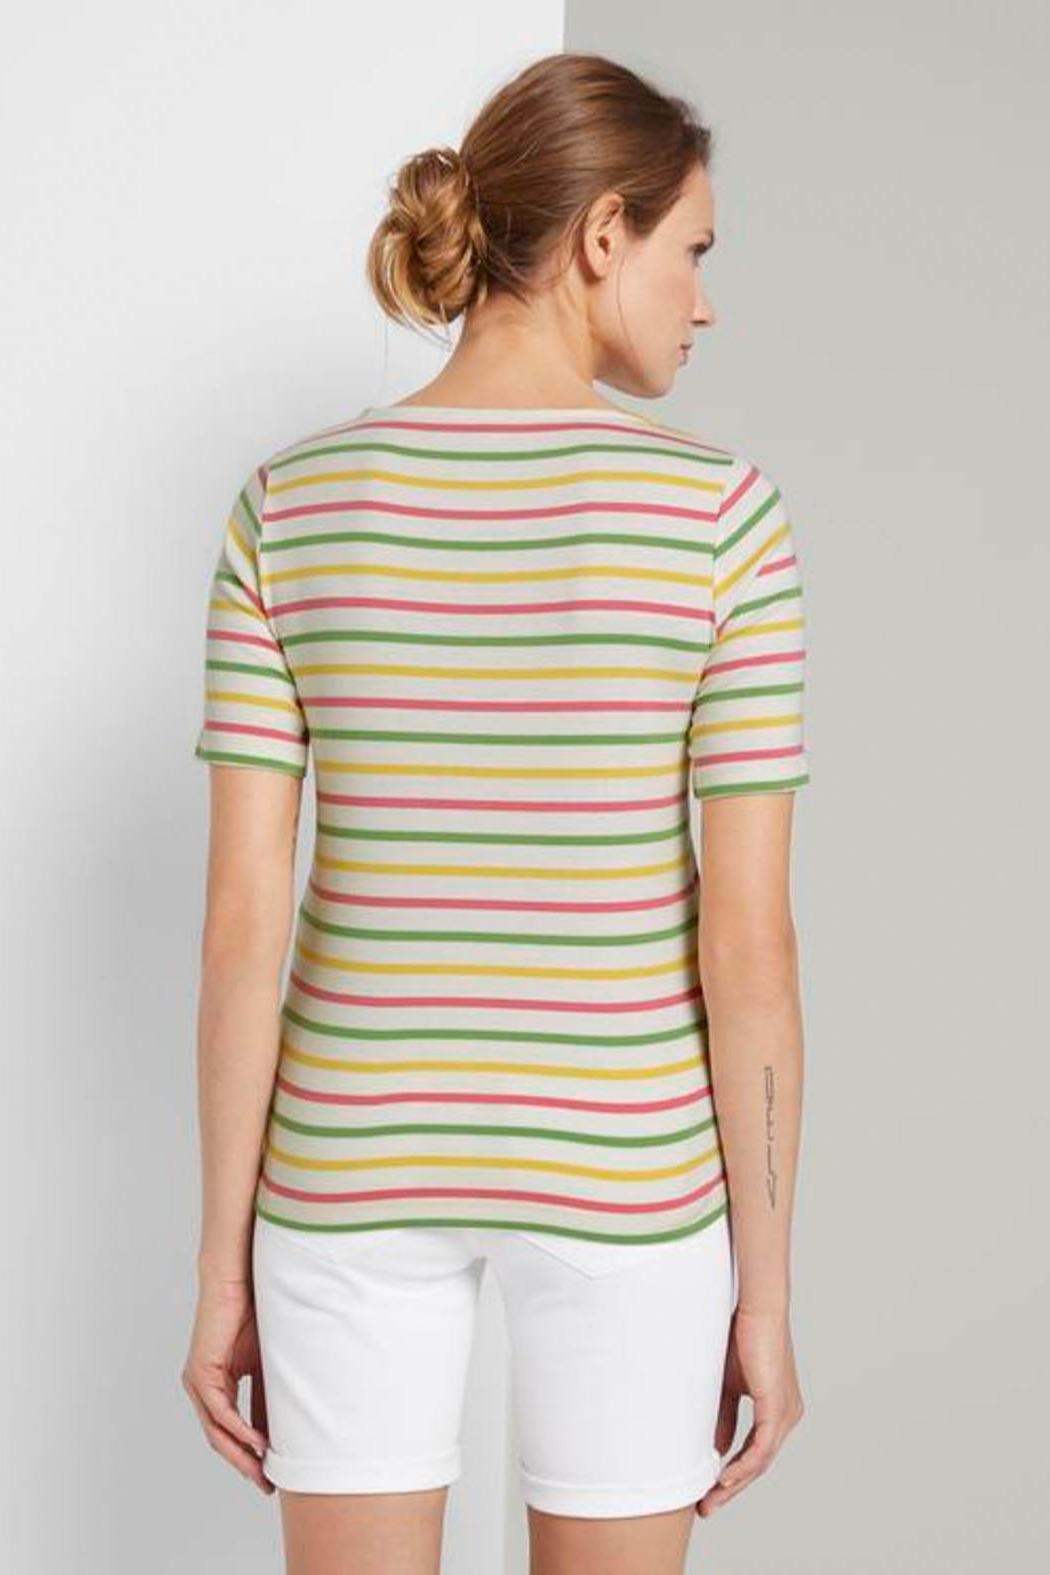 Tom Tailor Colorful T-Shirt With Stripes - Front Full Image